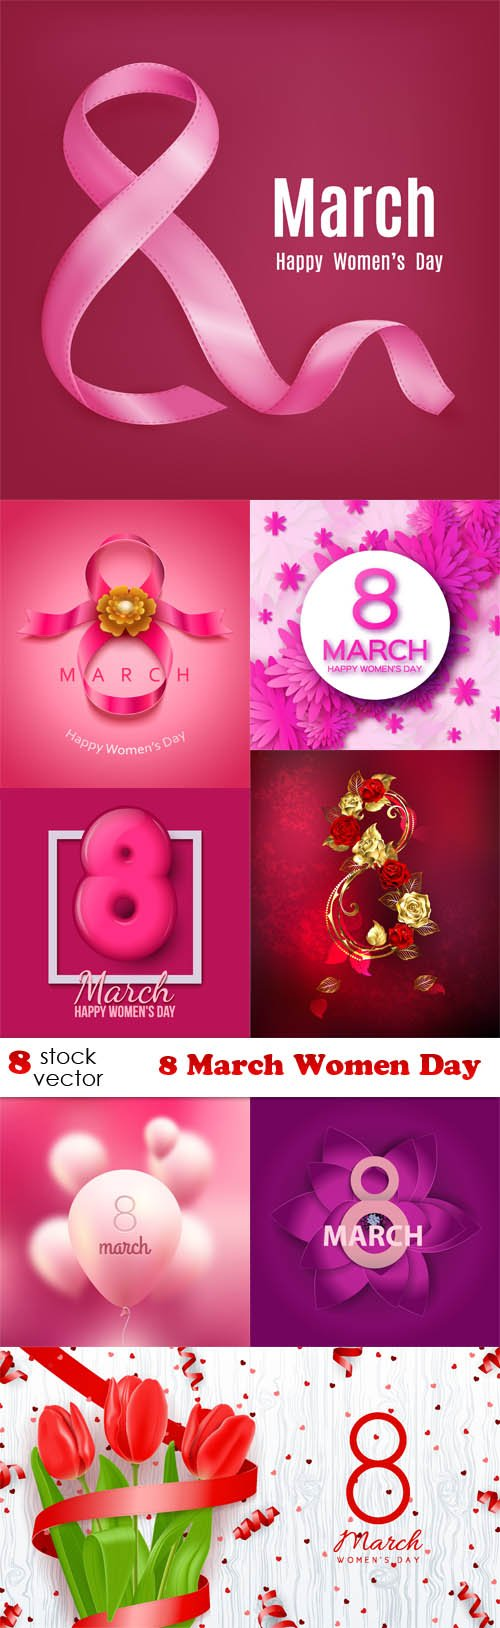 Vectors - 8 March Women Day